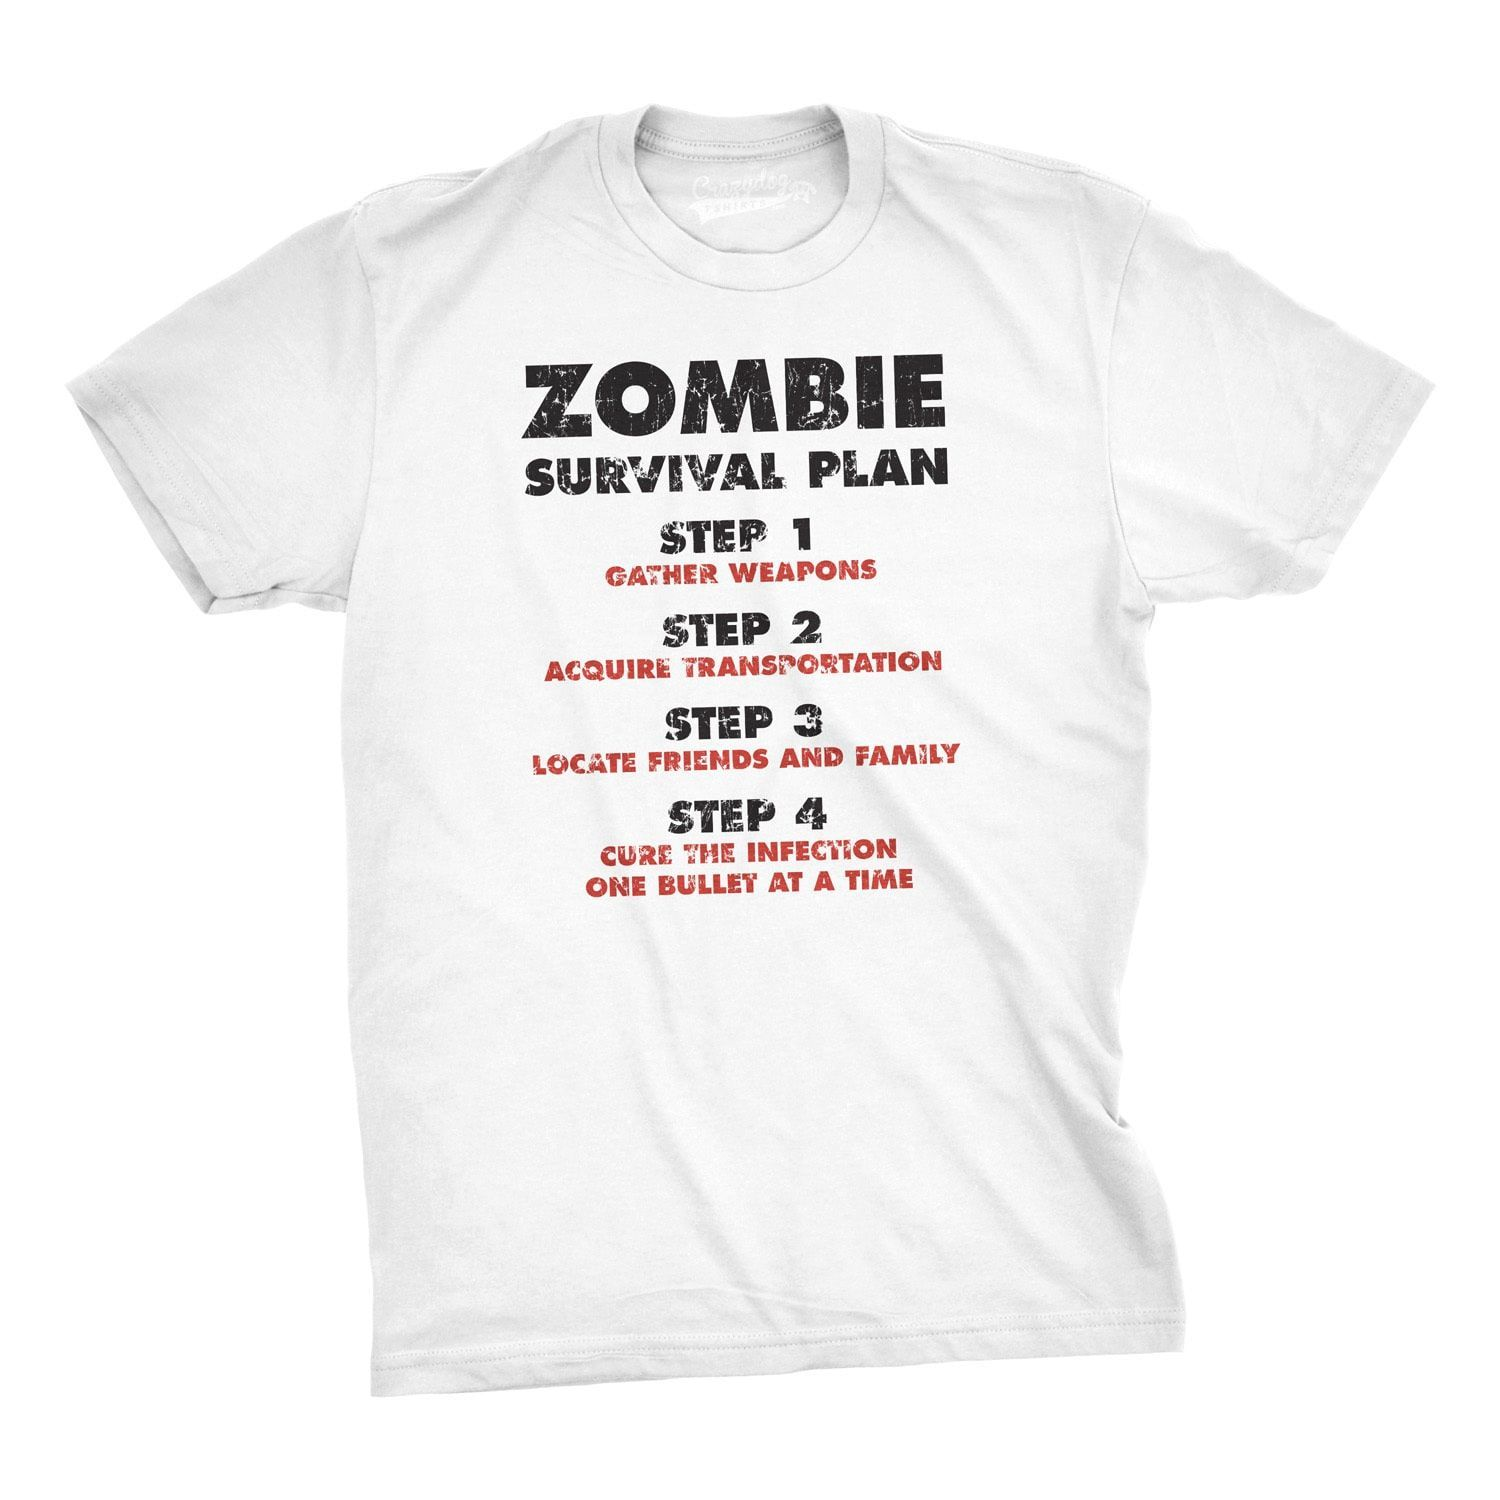 Zombie Survival Plan T-Shirt Funny Zombie Attack Shirts | Products ...